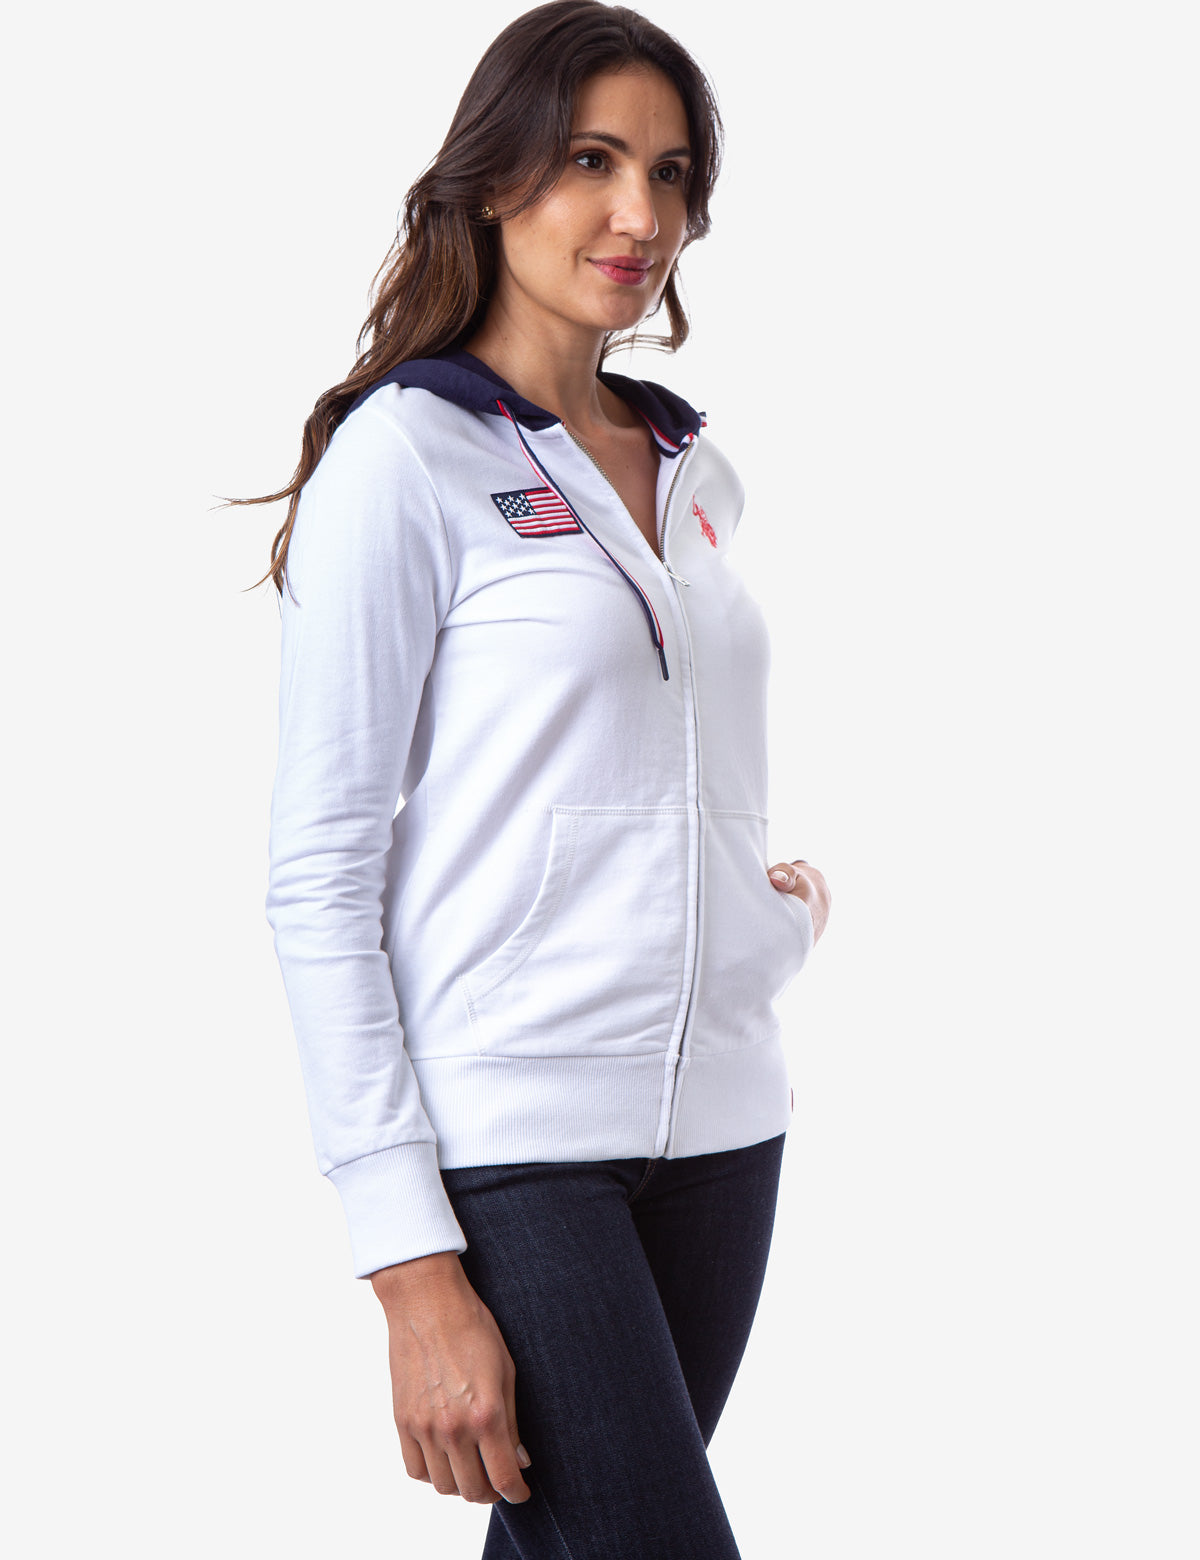 FLAG PATCH ZIP UP HOODIE - U.S. Polo Assn.